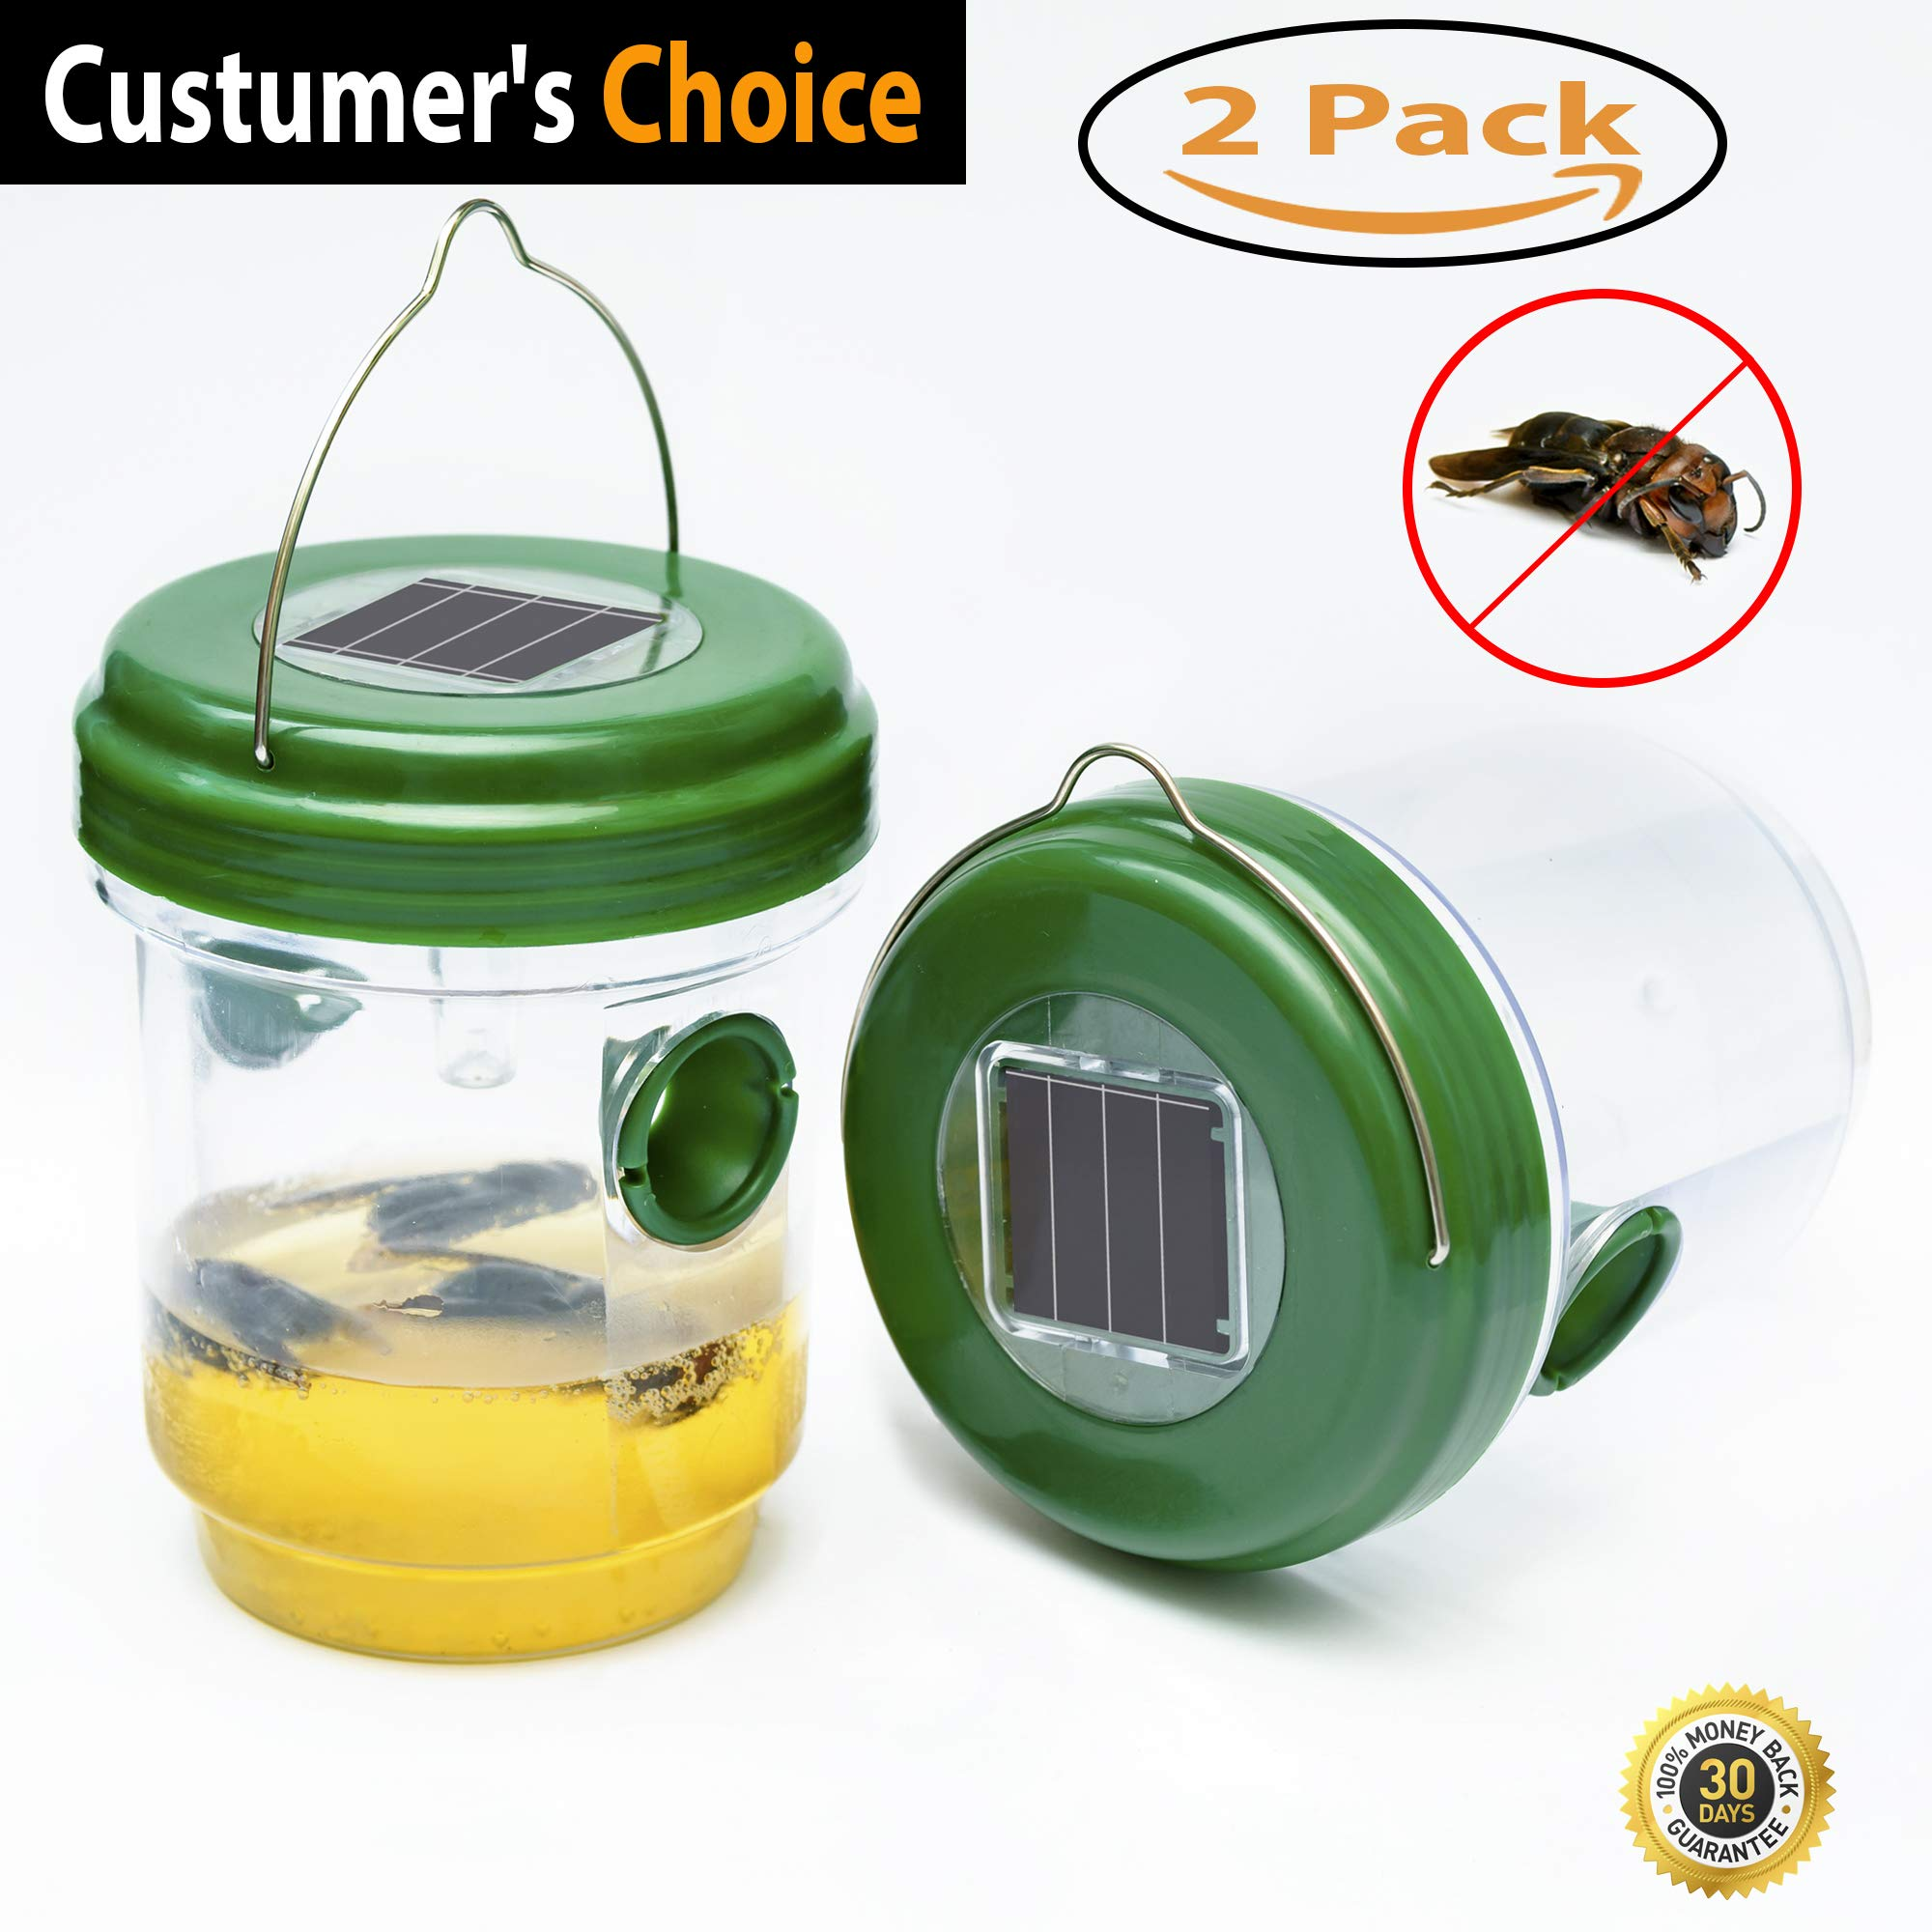 Hornet Traps For Outdoors, Bee Traps Yellow Jackets, Wasp Trap, Bee Catcher, YellowJacket Trap, Wasp and Hornet Trap, Wasp Killer Trap Ultraviolet LED Light Waterproof Trapping Hornet, 2 PACK